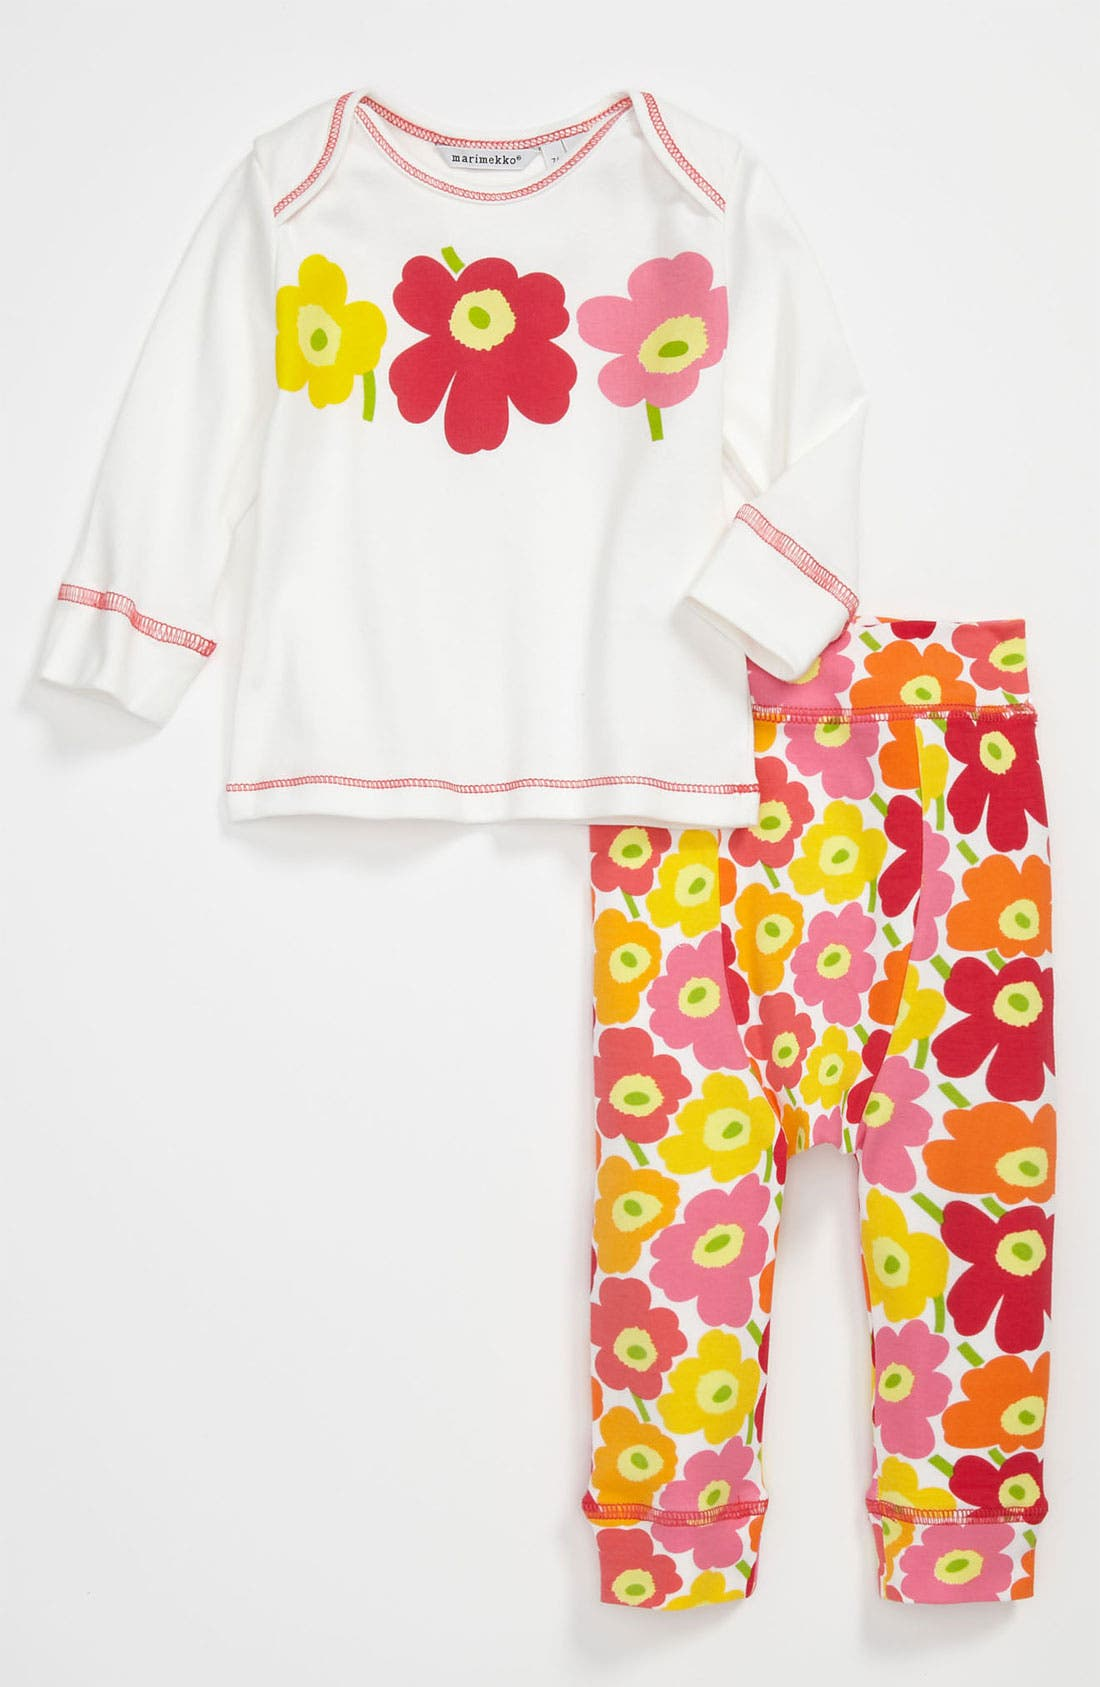 Alternate Image 1 Selected - Marimekko 'Unikko' Print Top & Leggings (Infant)